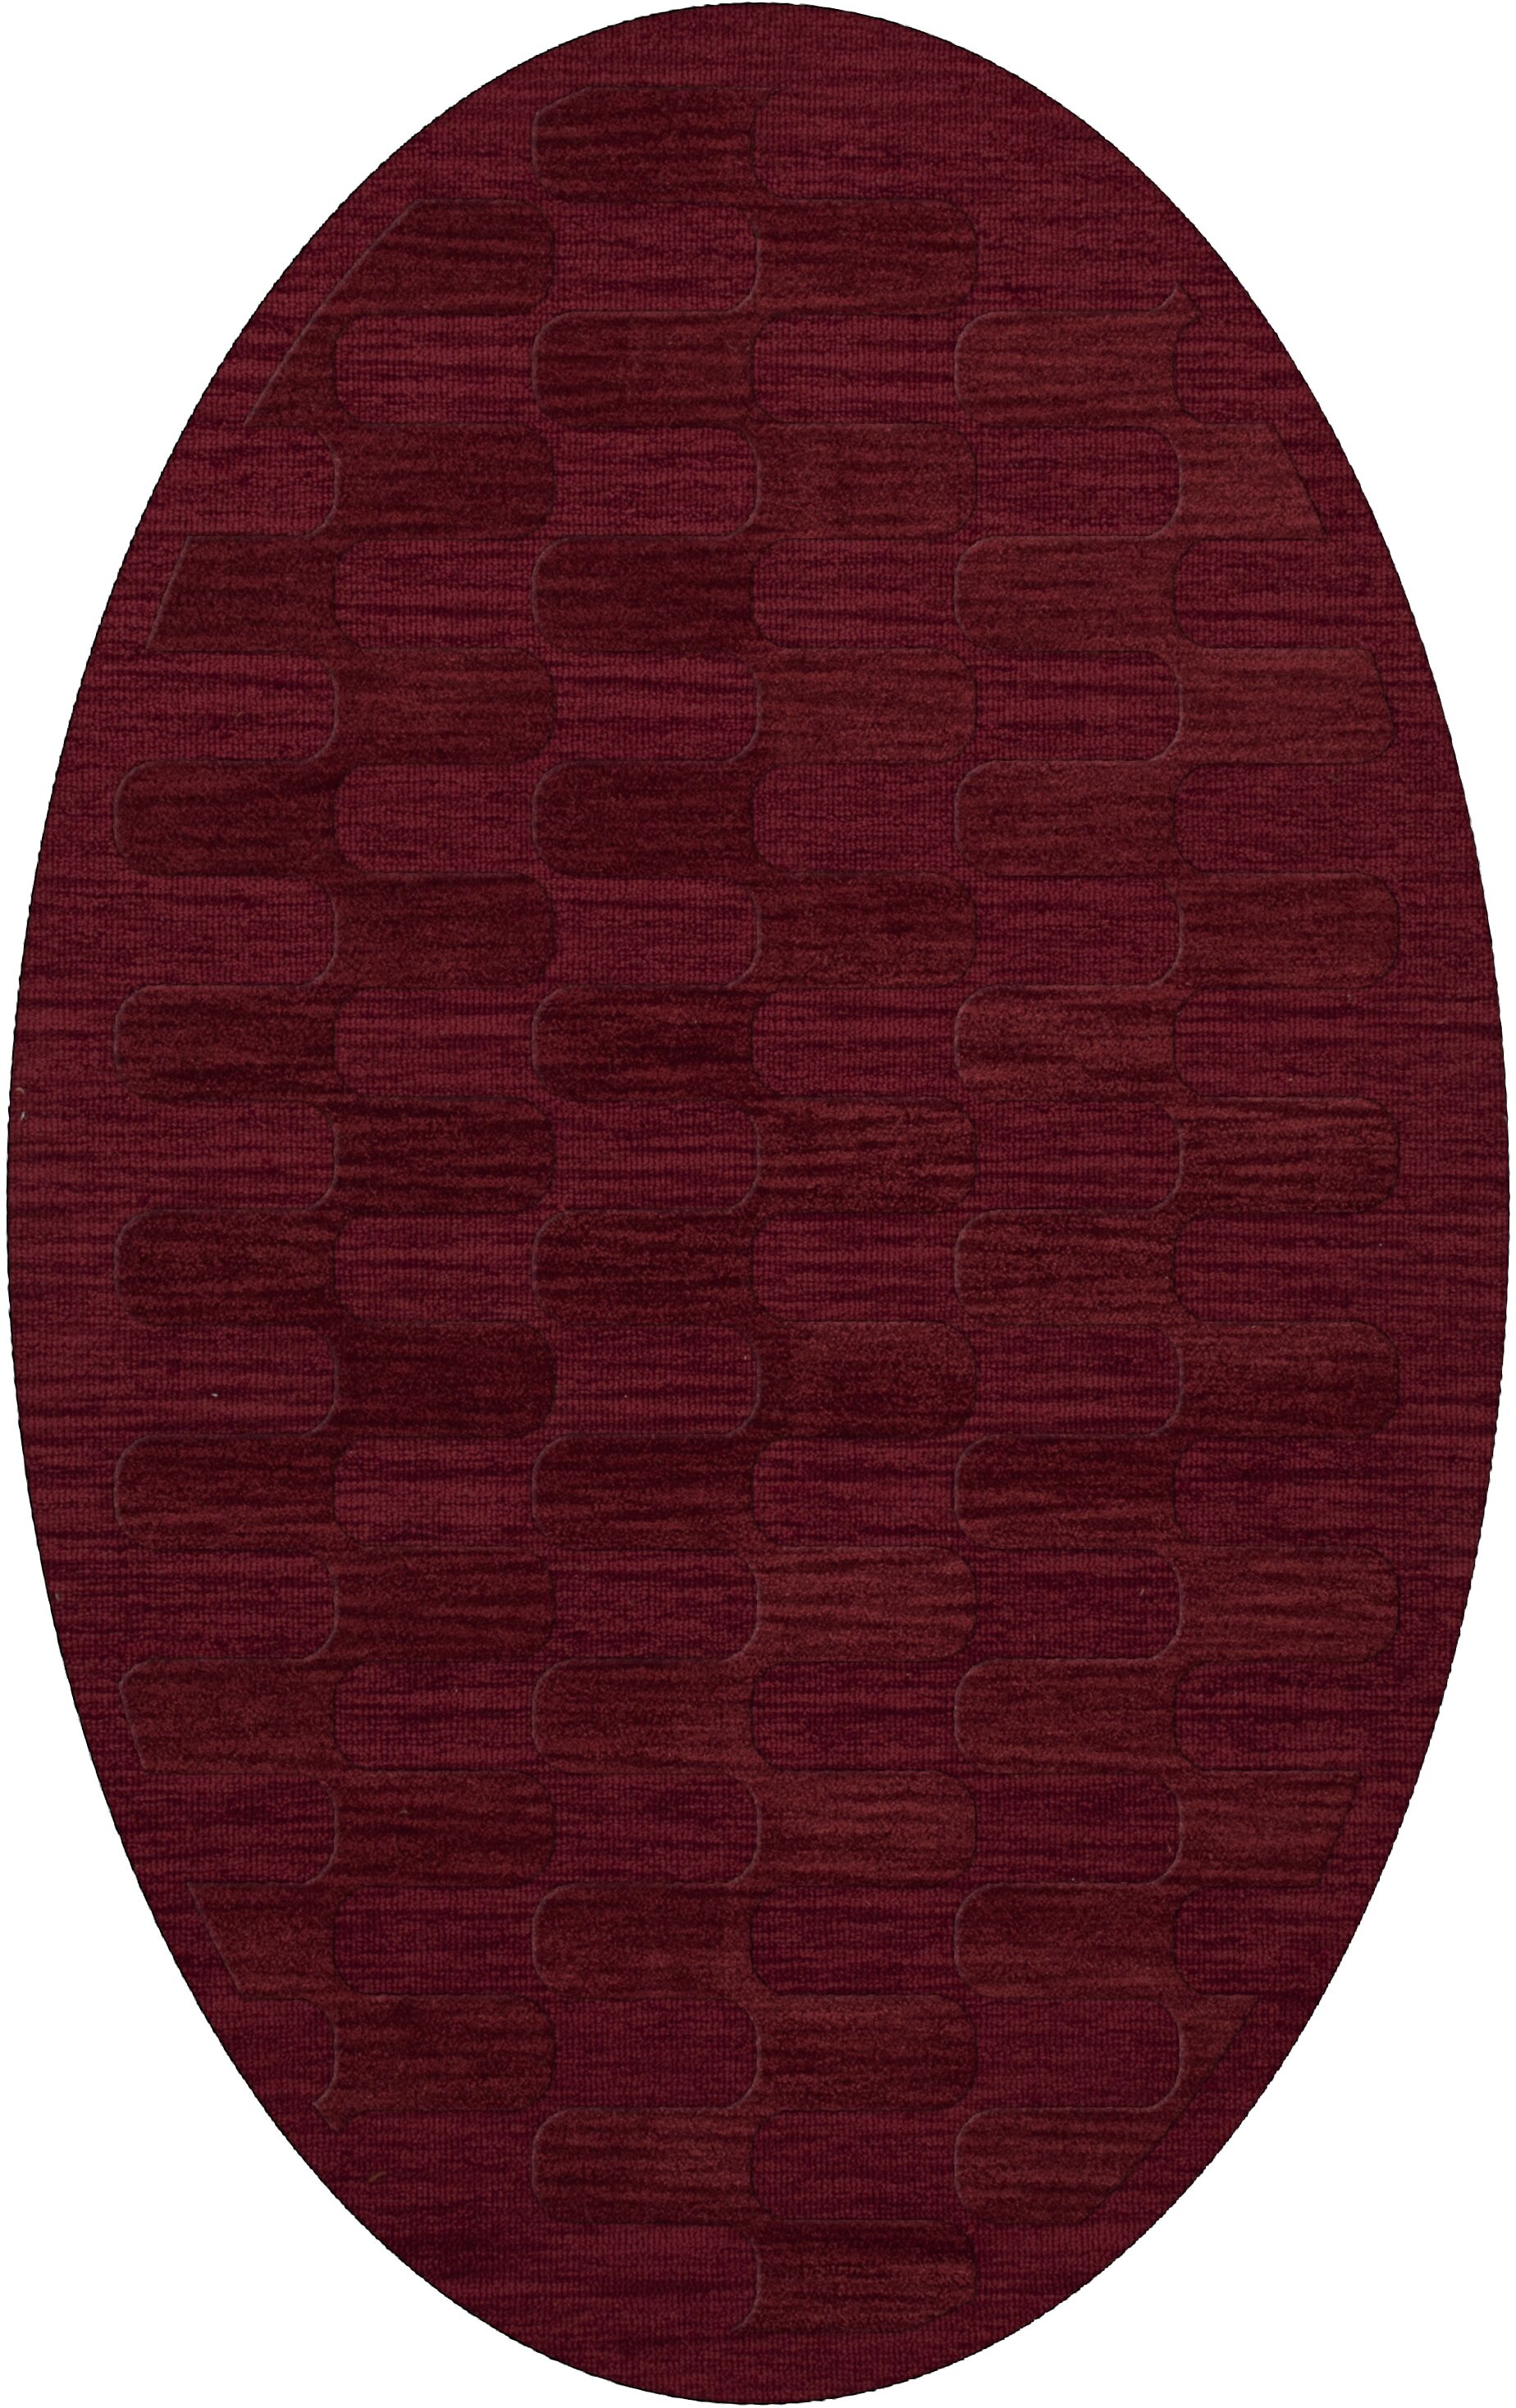 Dover Rich Red Area Rug Rug Size: Oval 6' x 9'